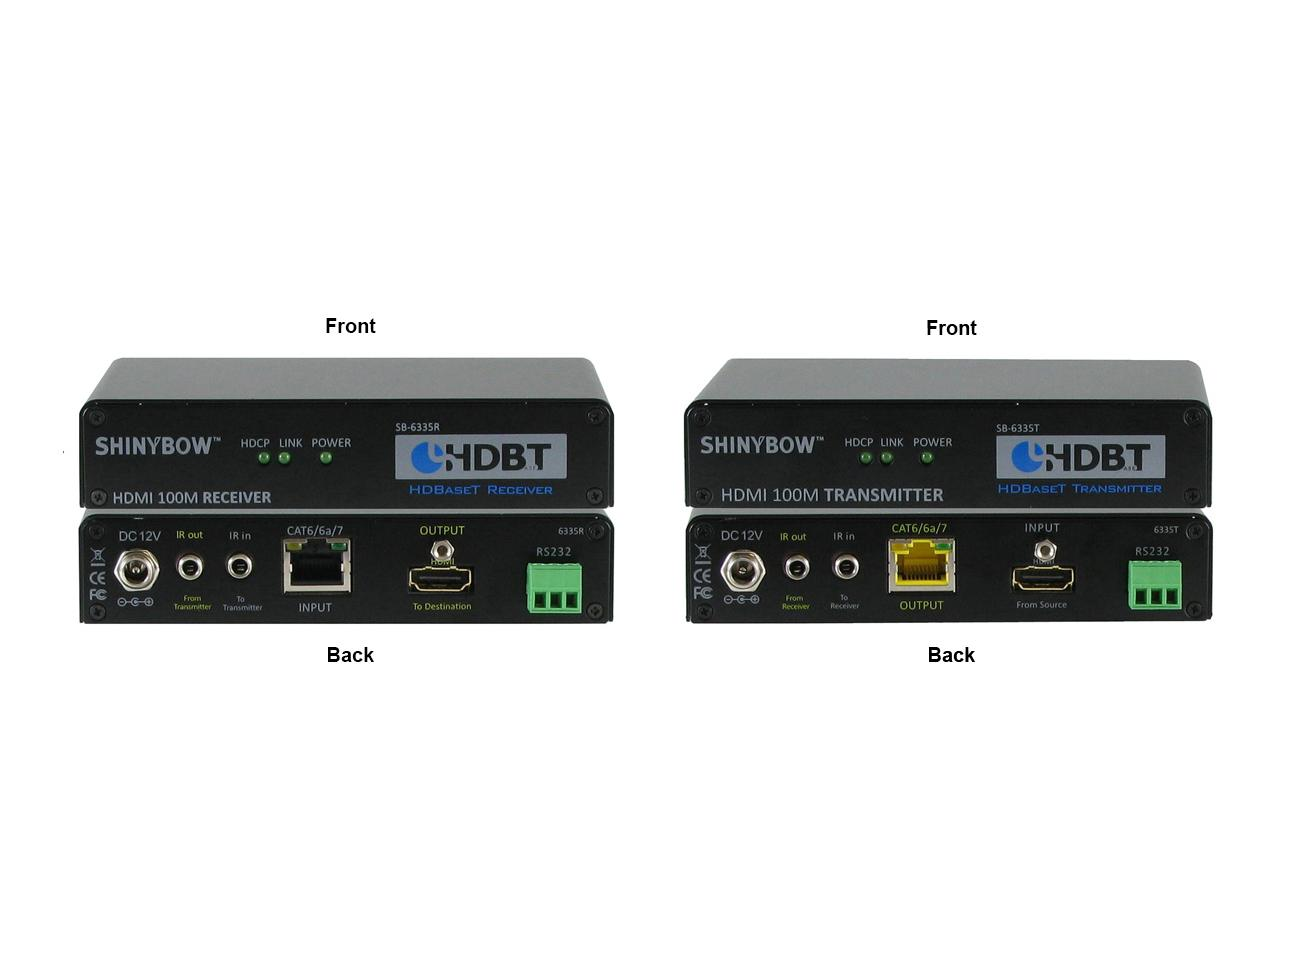 SB-6335x (KIT) HDMI HDBaseT Tx/Rx Kit up to 330ft (2-Way IR/RS-232/HDMI) by Shinybow